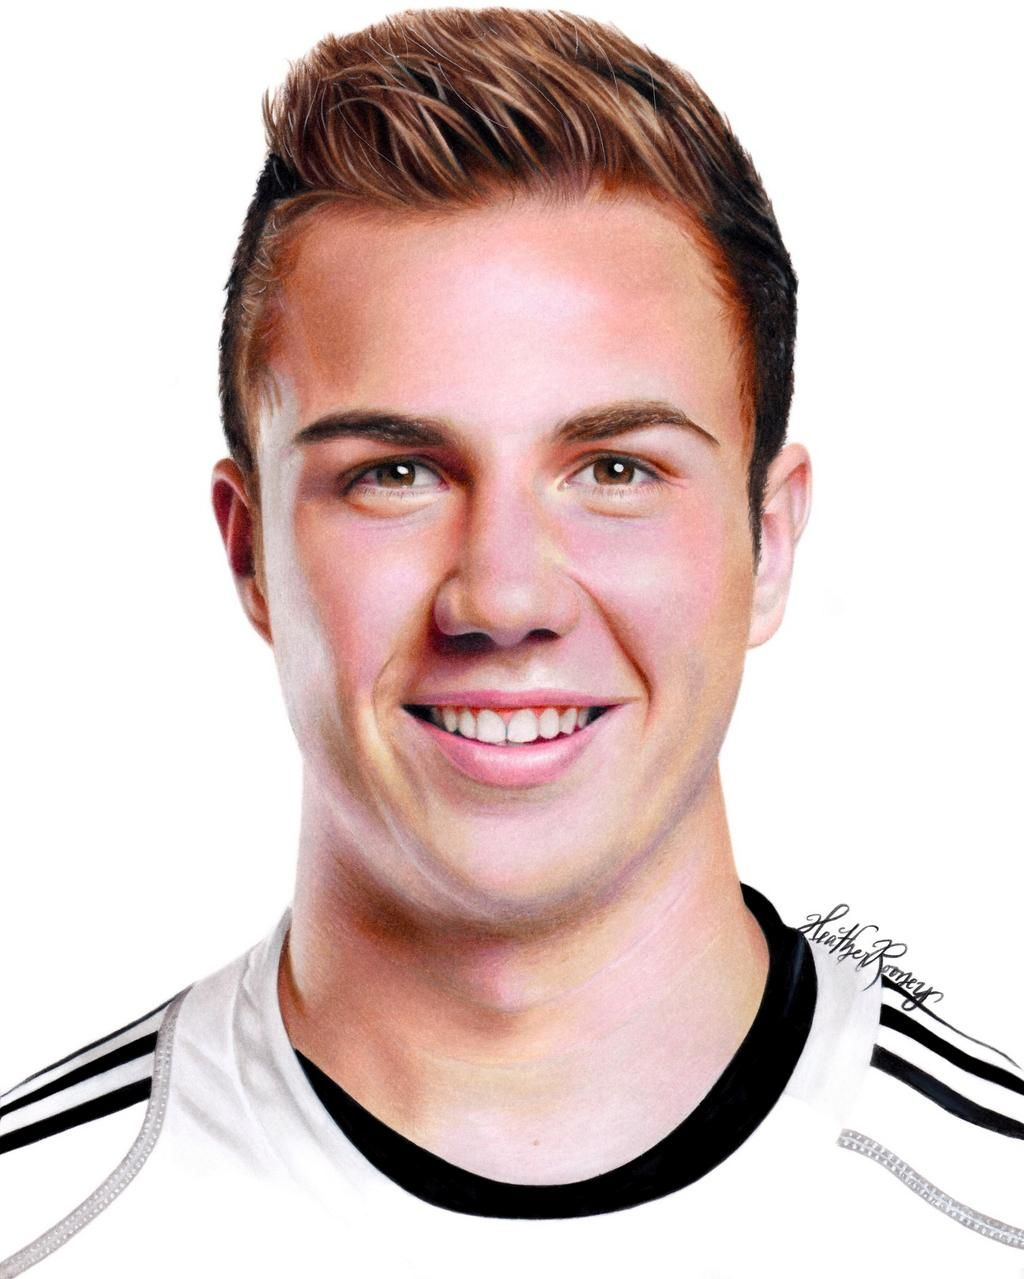 Colored pencil drawing of Mario Gotze Mario Gotze